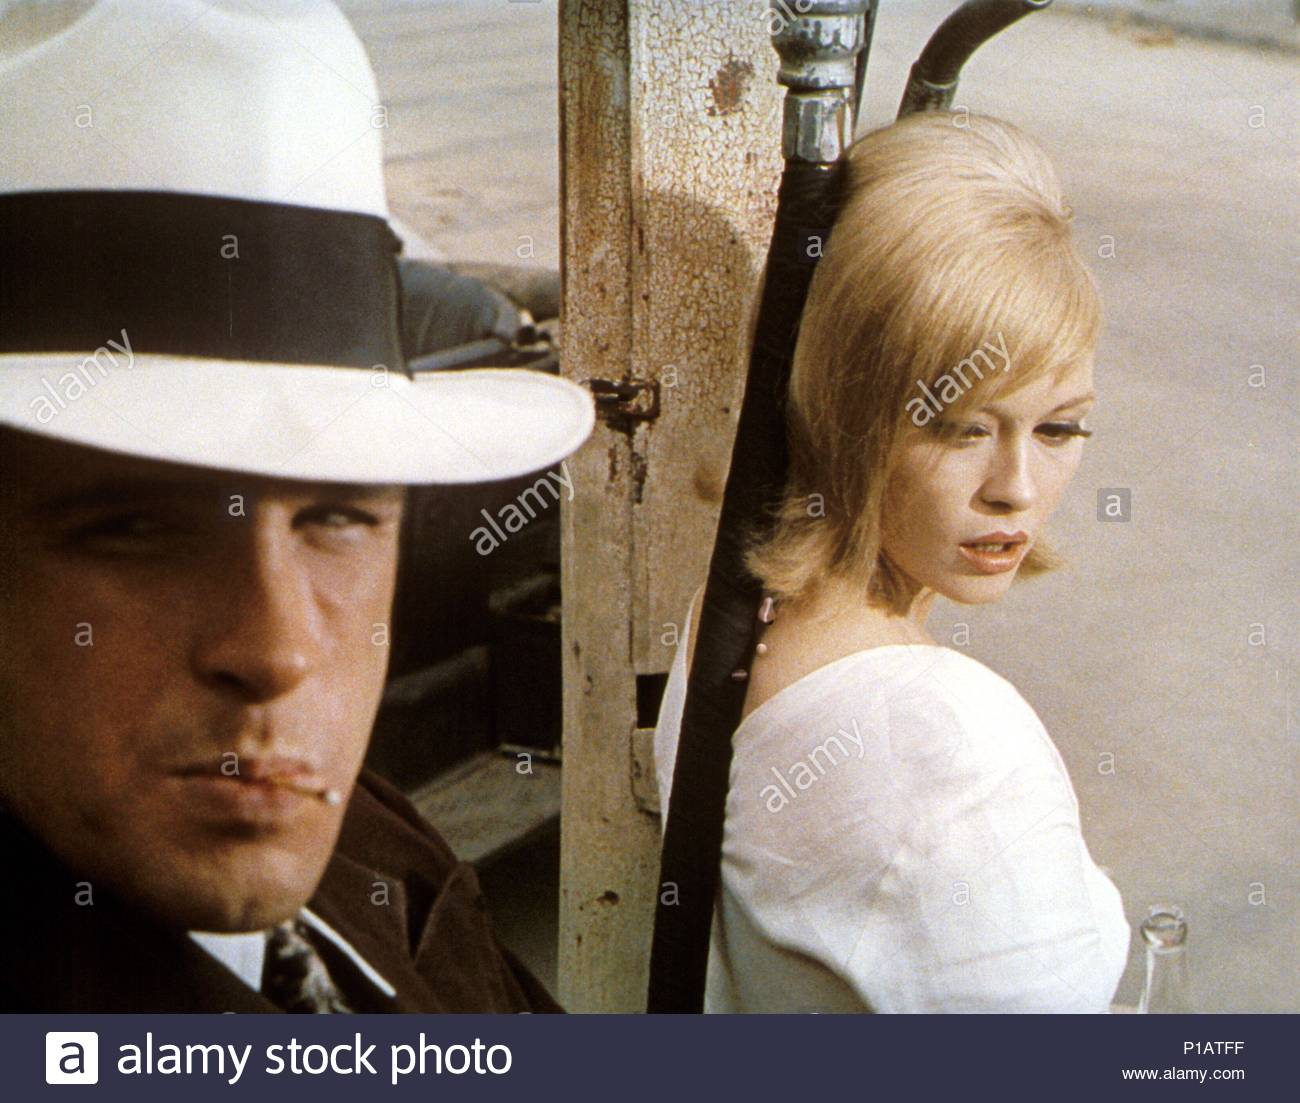 an analysis of bonnie and clyde a film by arthur penn Arthur penn, the academy award  bonnie and clyde is a film i addressed frequently throughout the course of my research on post-9/11 american independent cinema.